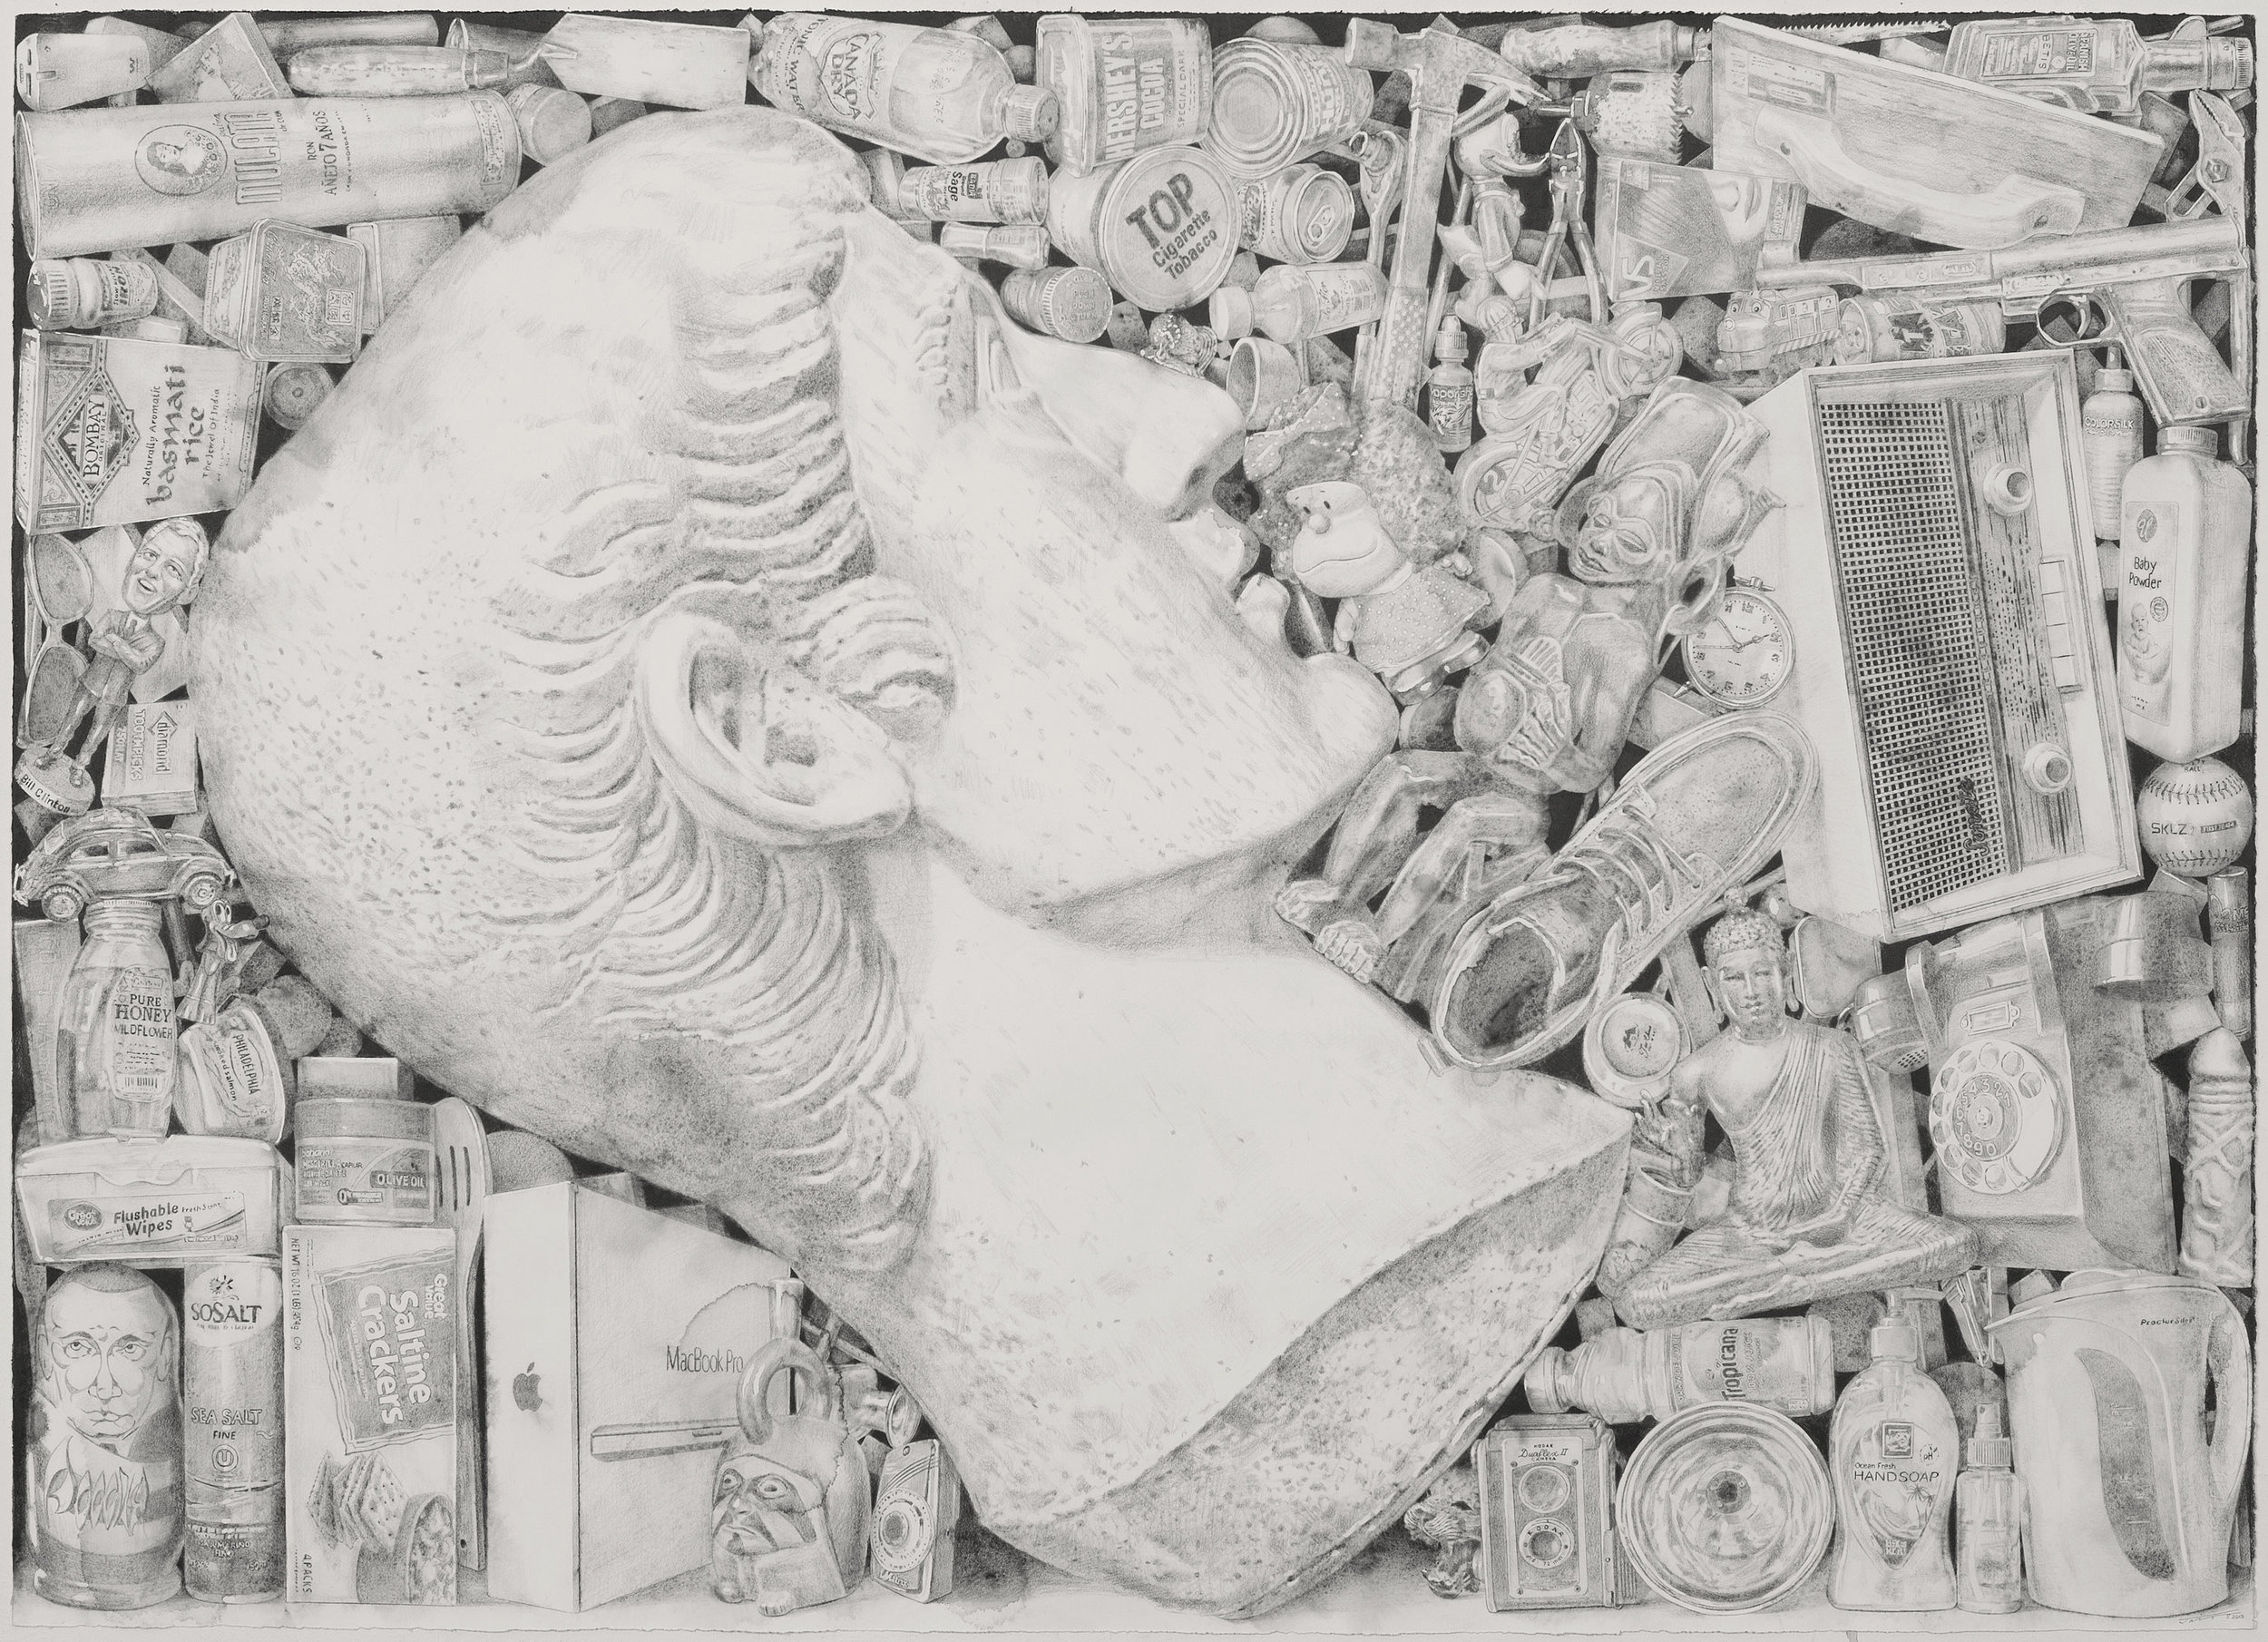 Jairo Alfonso. 174, 2015.Watercolor pencil on paper 39.4x55.1 inches.jpg